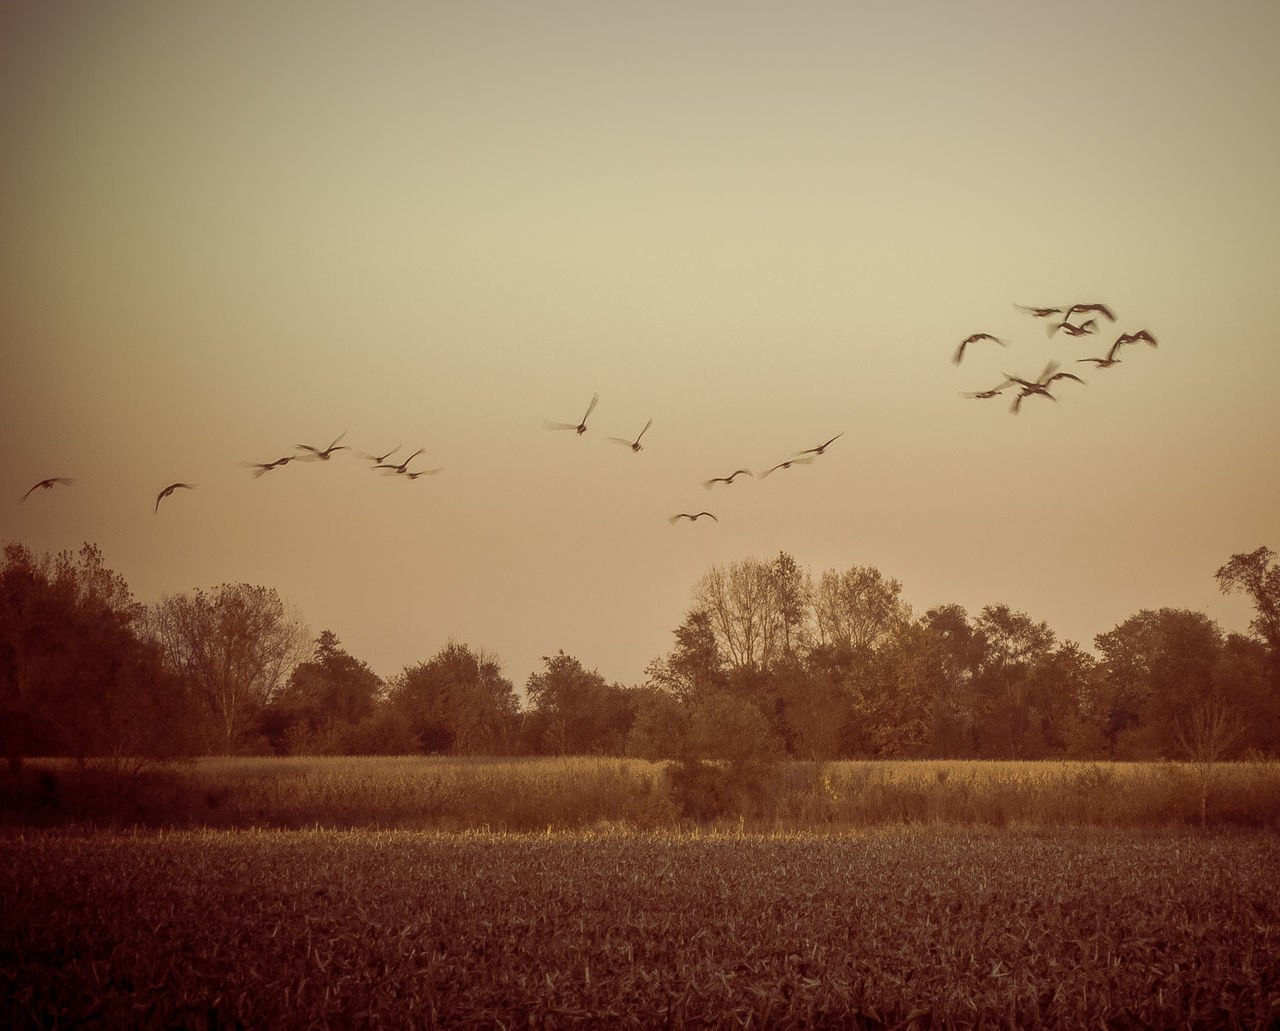 Bird Flying Field Animal Themes Animals In The Wild Flock Of Birds Tranquil Scene Tranquility Rural Scene Beauty In Nature Early Fall Outdoors Movement Flight Leaving The Great Outdoors - 2017 EyeEm Awards